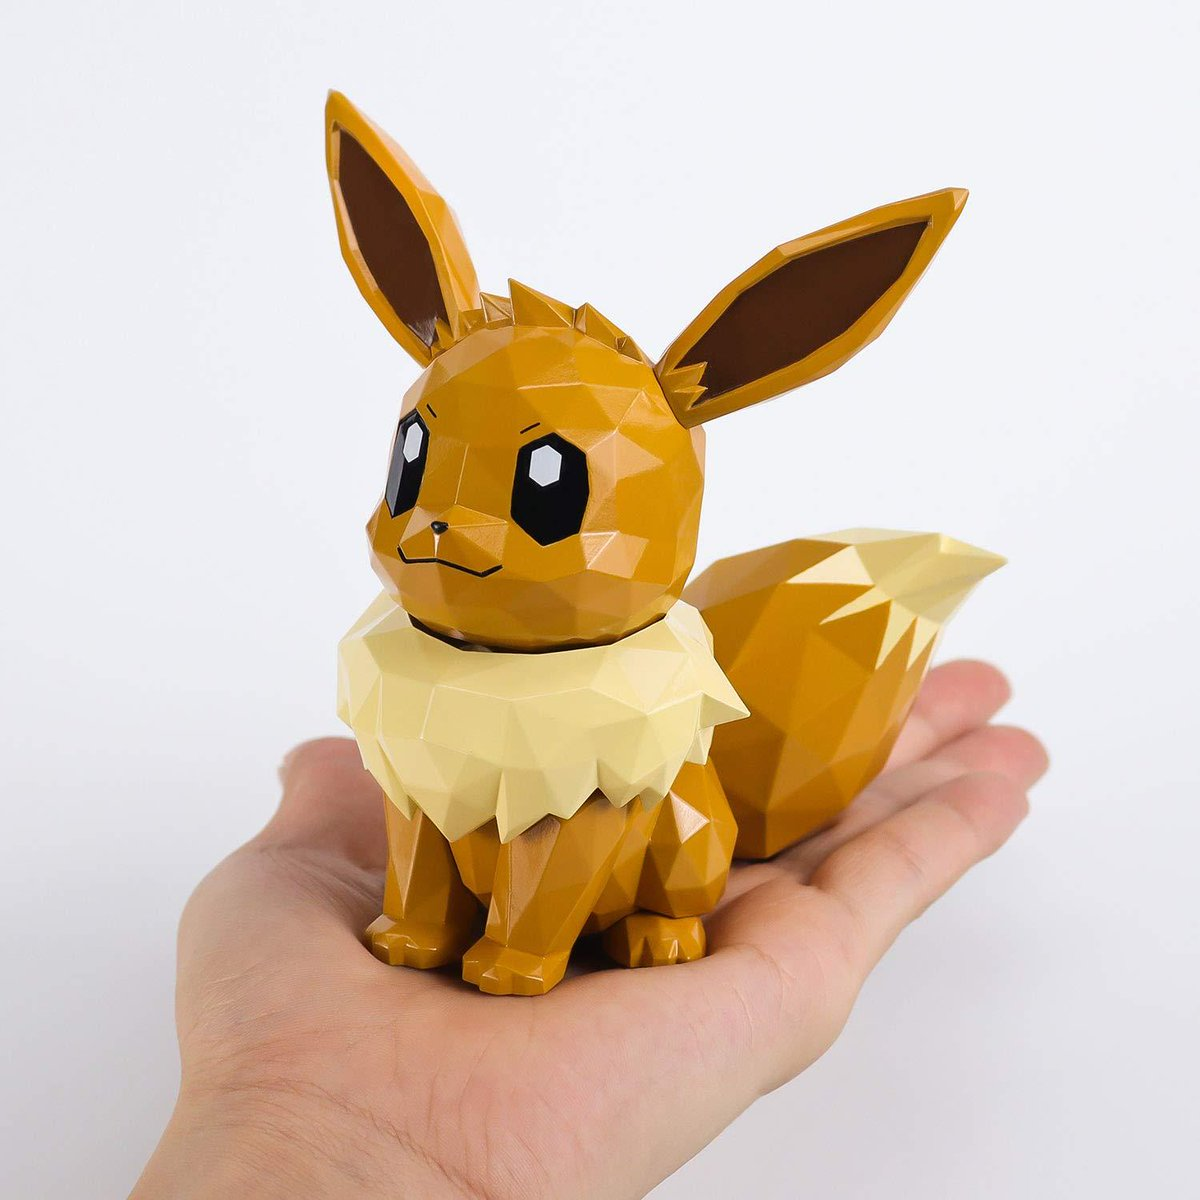 Larger POLYGO Pokémon Eevee figure also announced, releases November 30 and also available for international shipping 💸 Little pricey, but definitely adorable! amzn.to/2IjmCcd